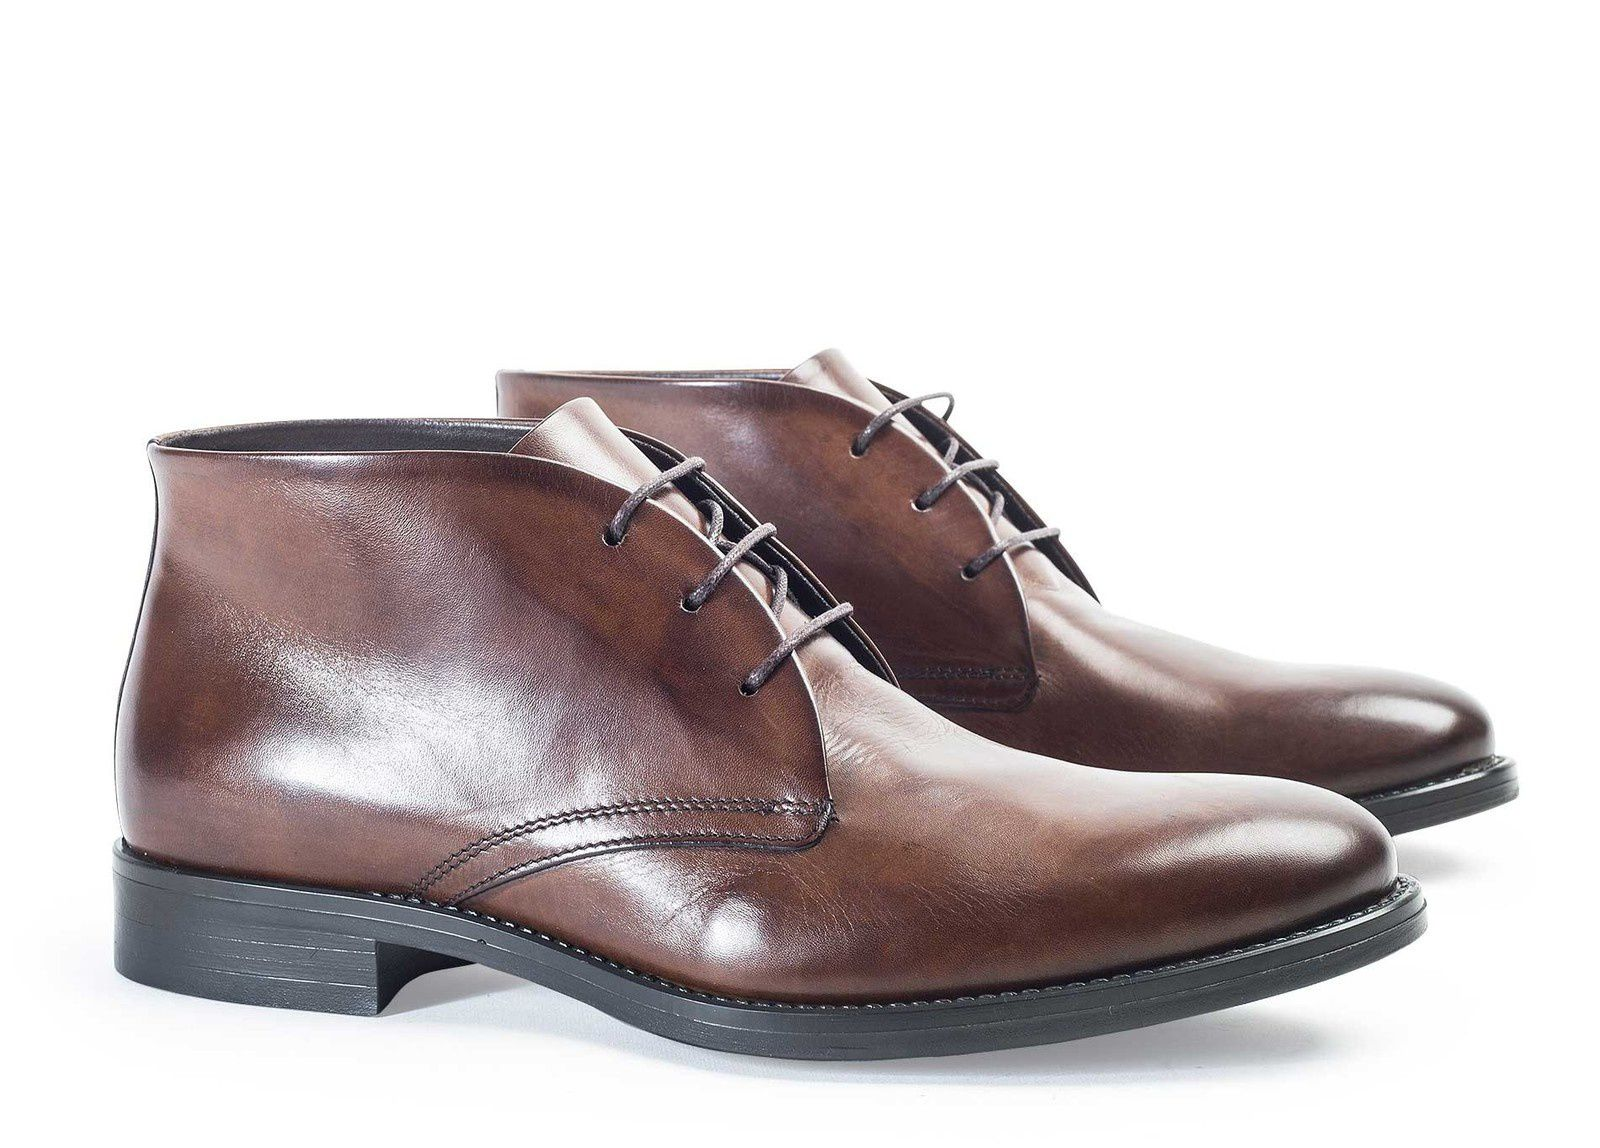 c48053bc8b Chaussures homme André - sarlmgntp.overblog.com